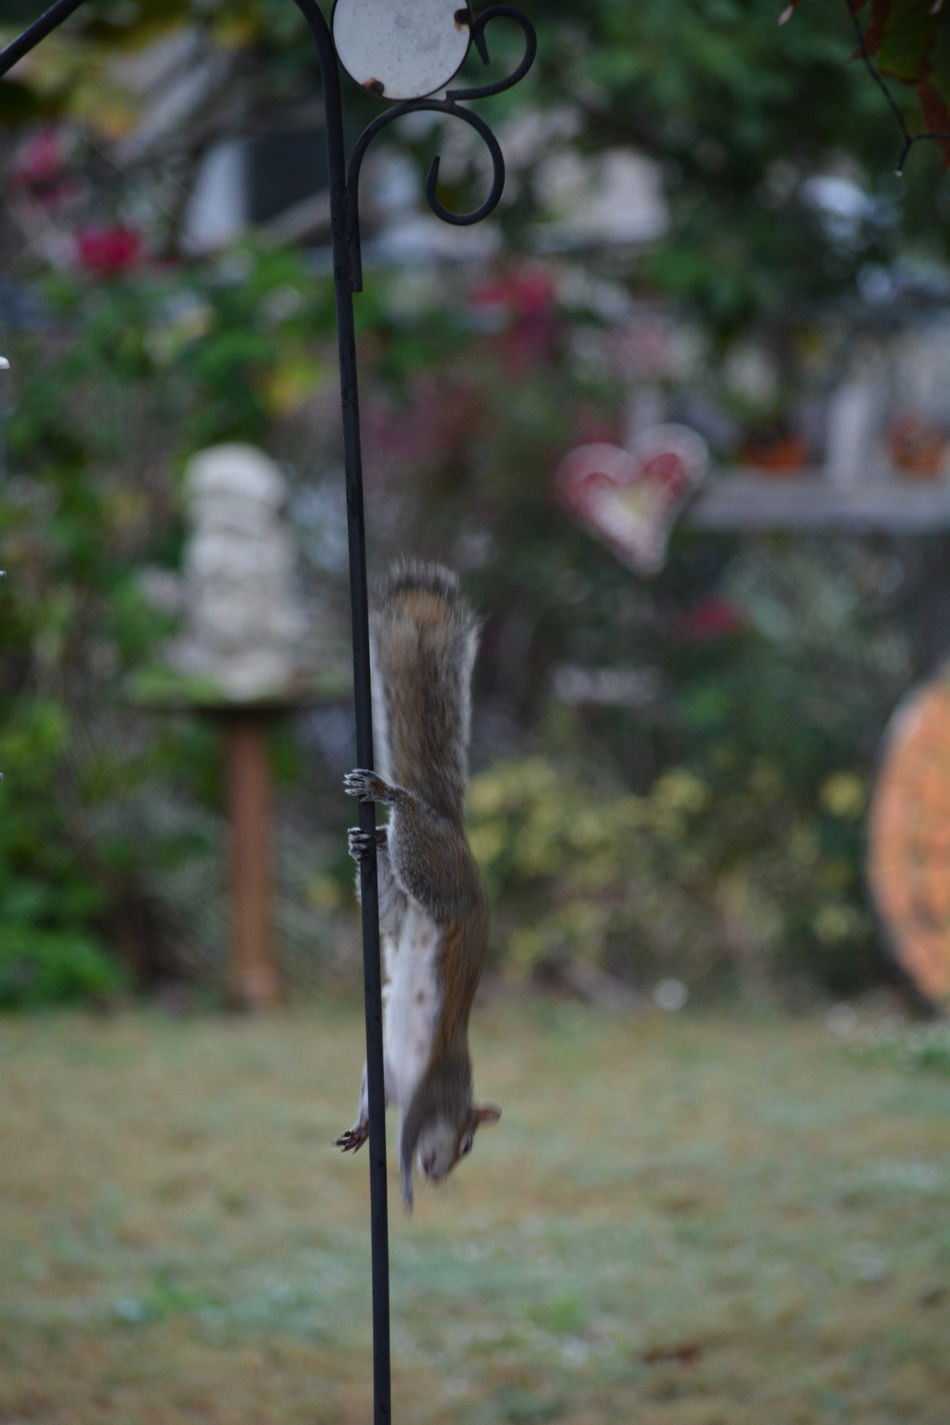 the squirrel was caught in the act of raiding the birdfeeder Squirrel Squirrels Backyard Photography Focus On Foreground Outdoors No People Silly Squirrels Sneeky Bird Feeder Animal Wildlife Animal Themes Motion Capture Motion Caught In Motion Caught In The Act